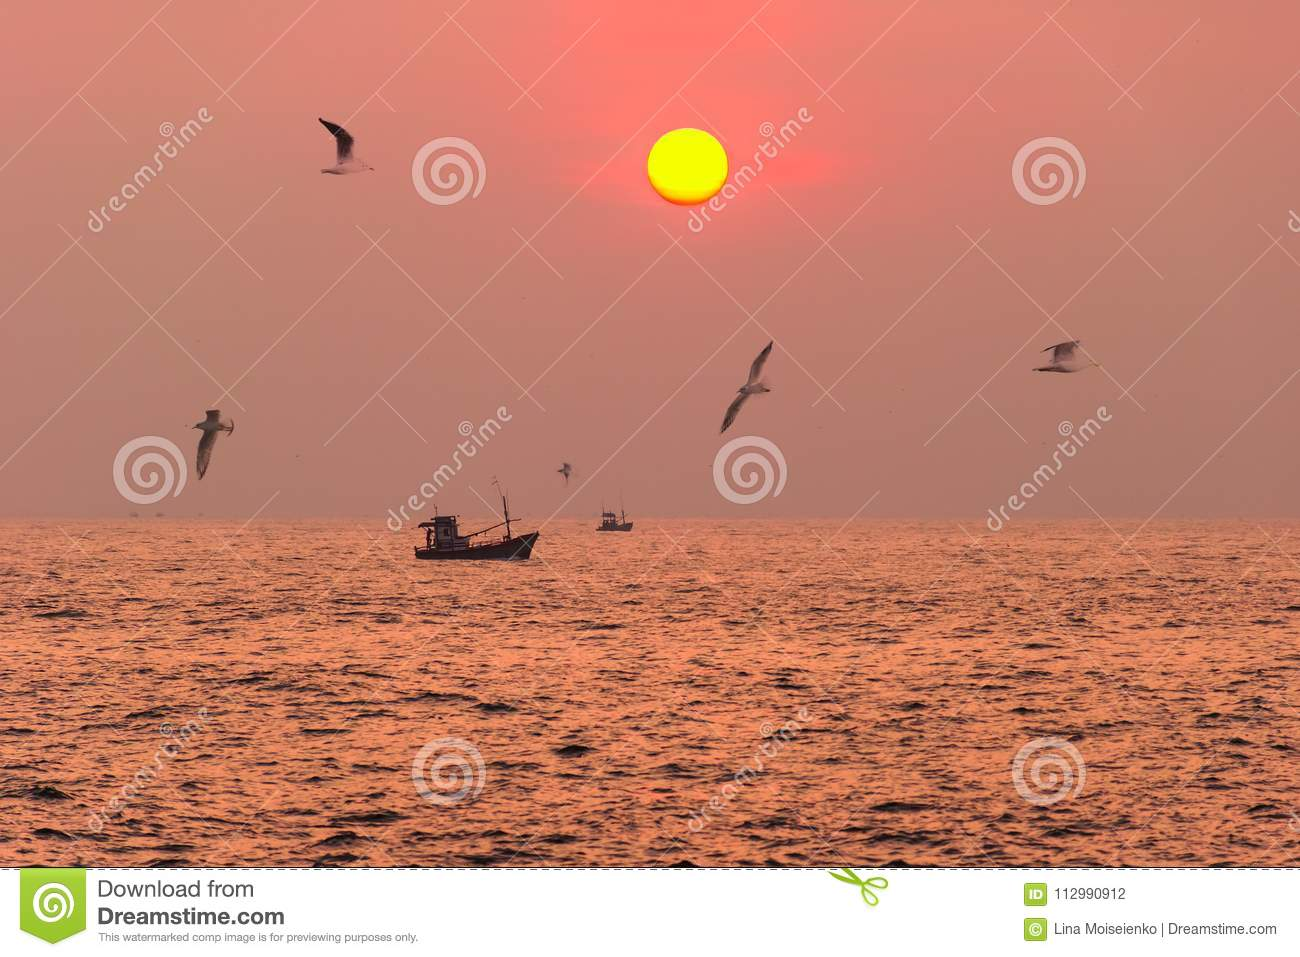 Sea landscape at sunset time with fishing boat on the horizon and birds